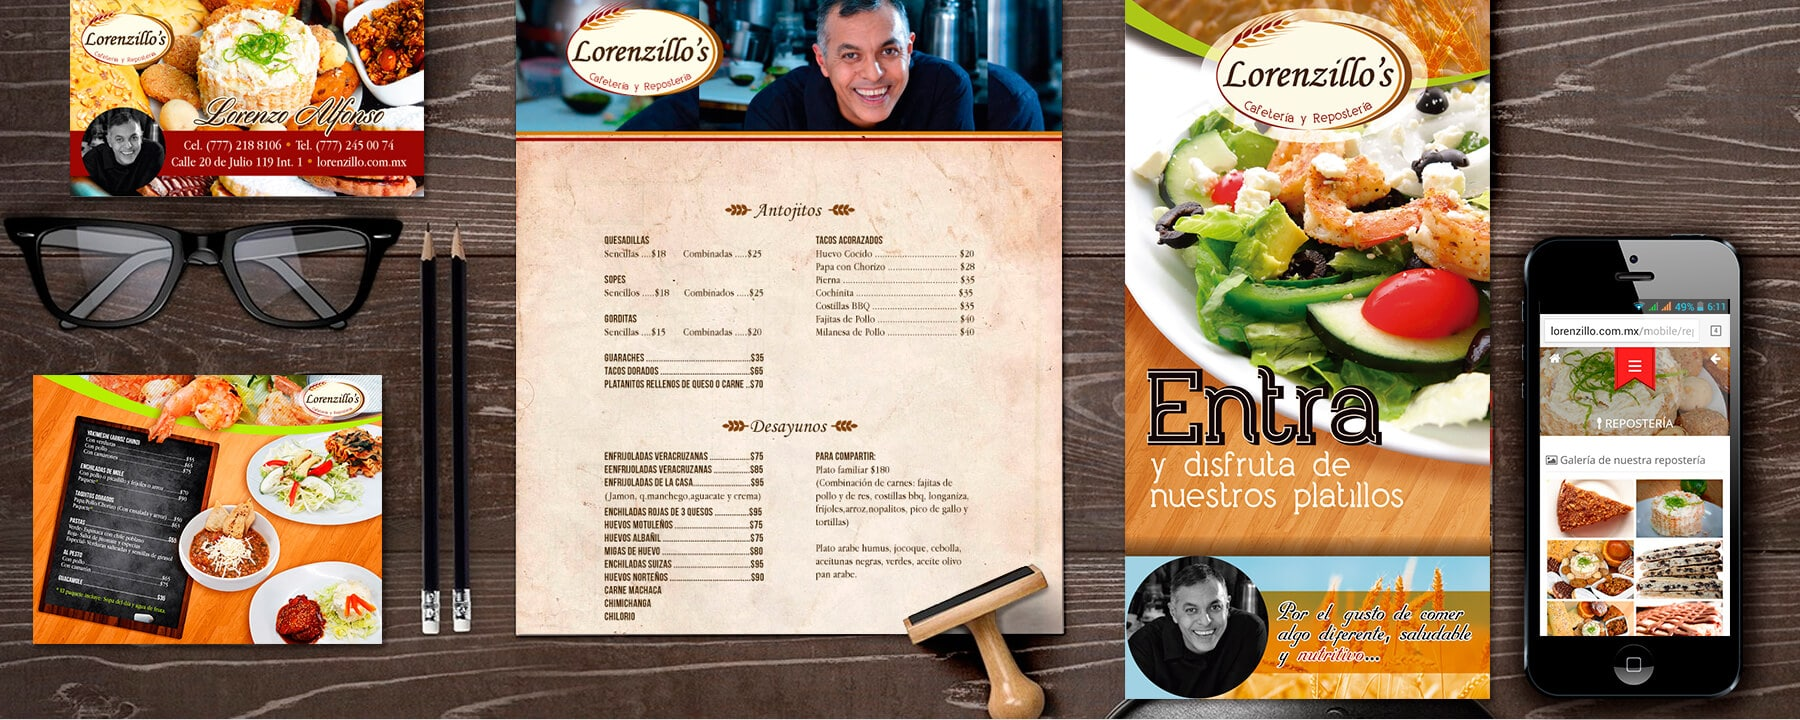 lorenzillo restaurante identidad visual corporativa